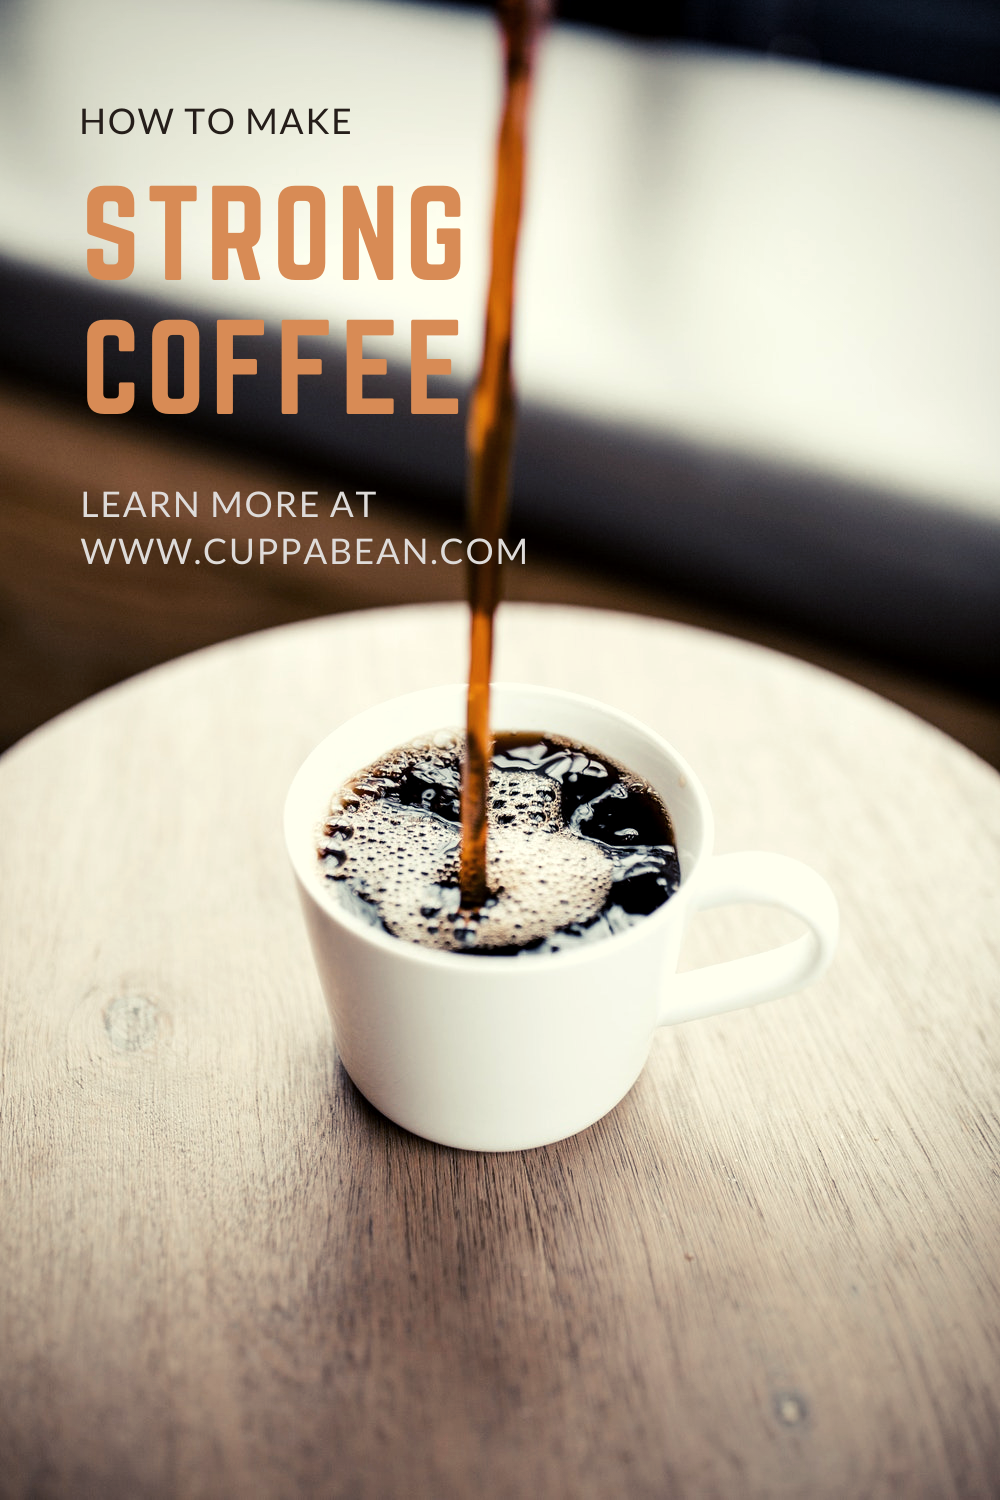 how to make strong coffee guide